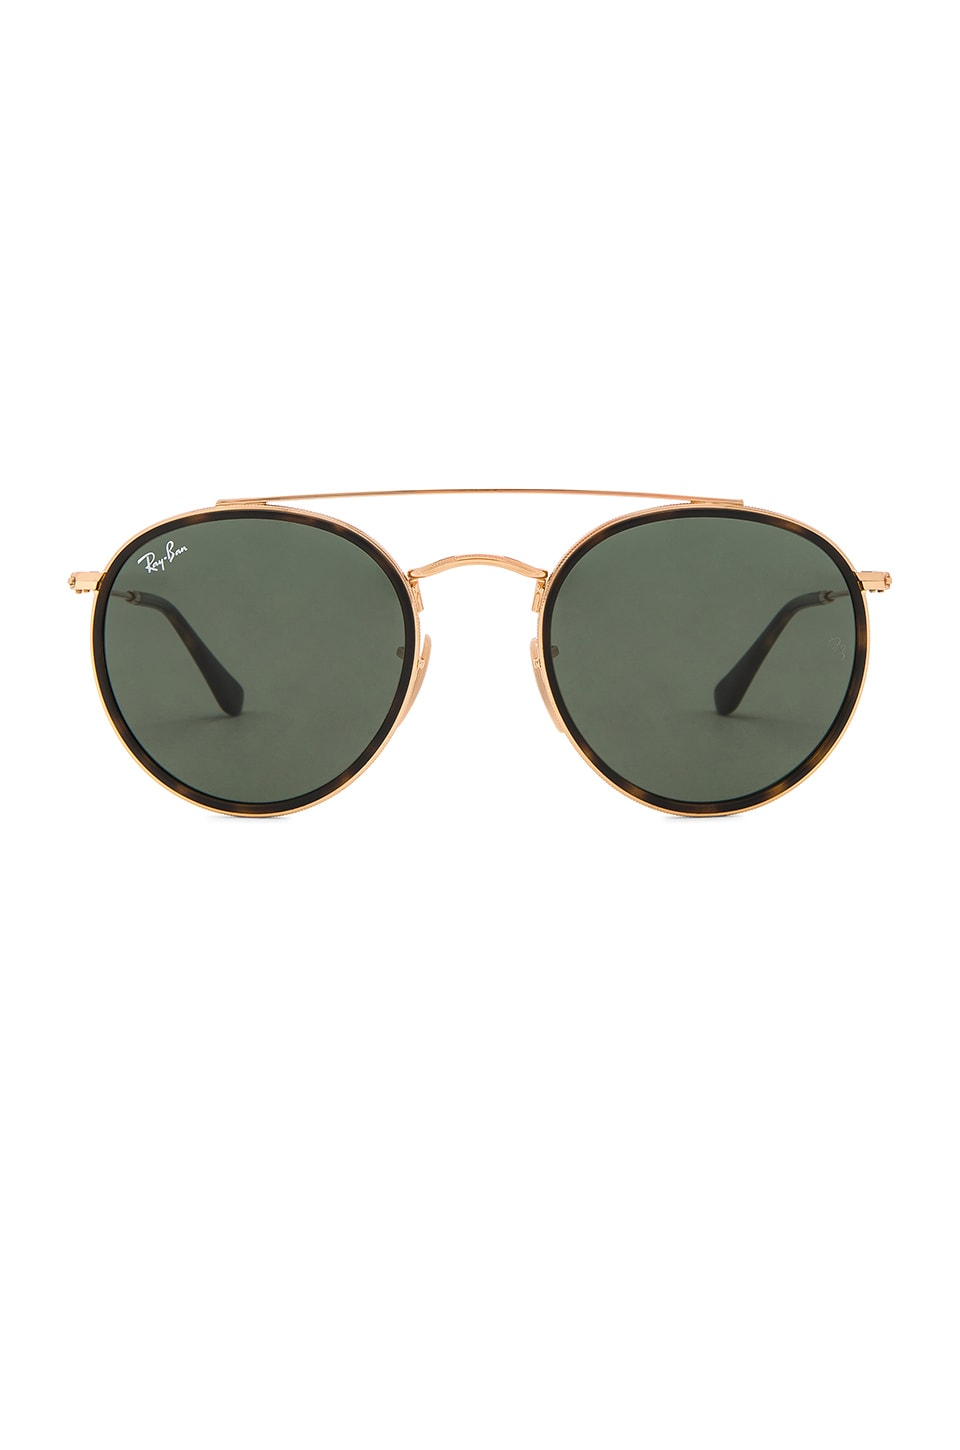 Ray ban sunglasses sale new zealand - Ray Ban Round Double Bridge In Gold Green Classic